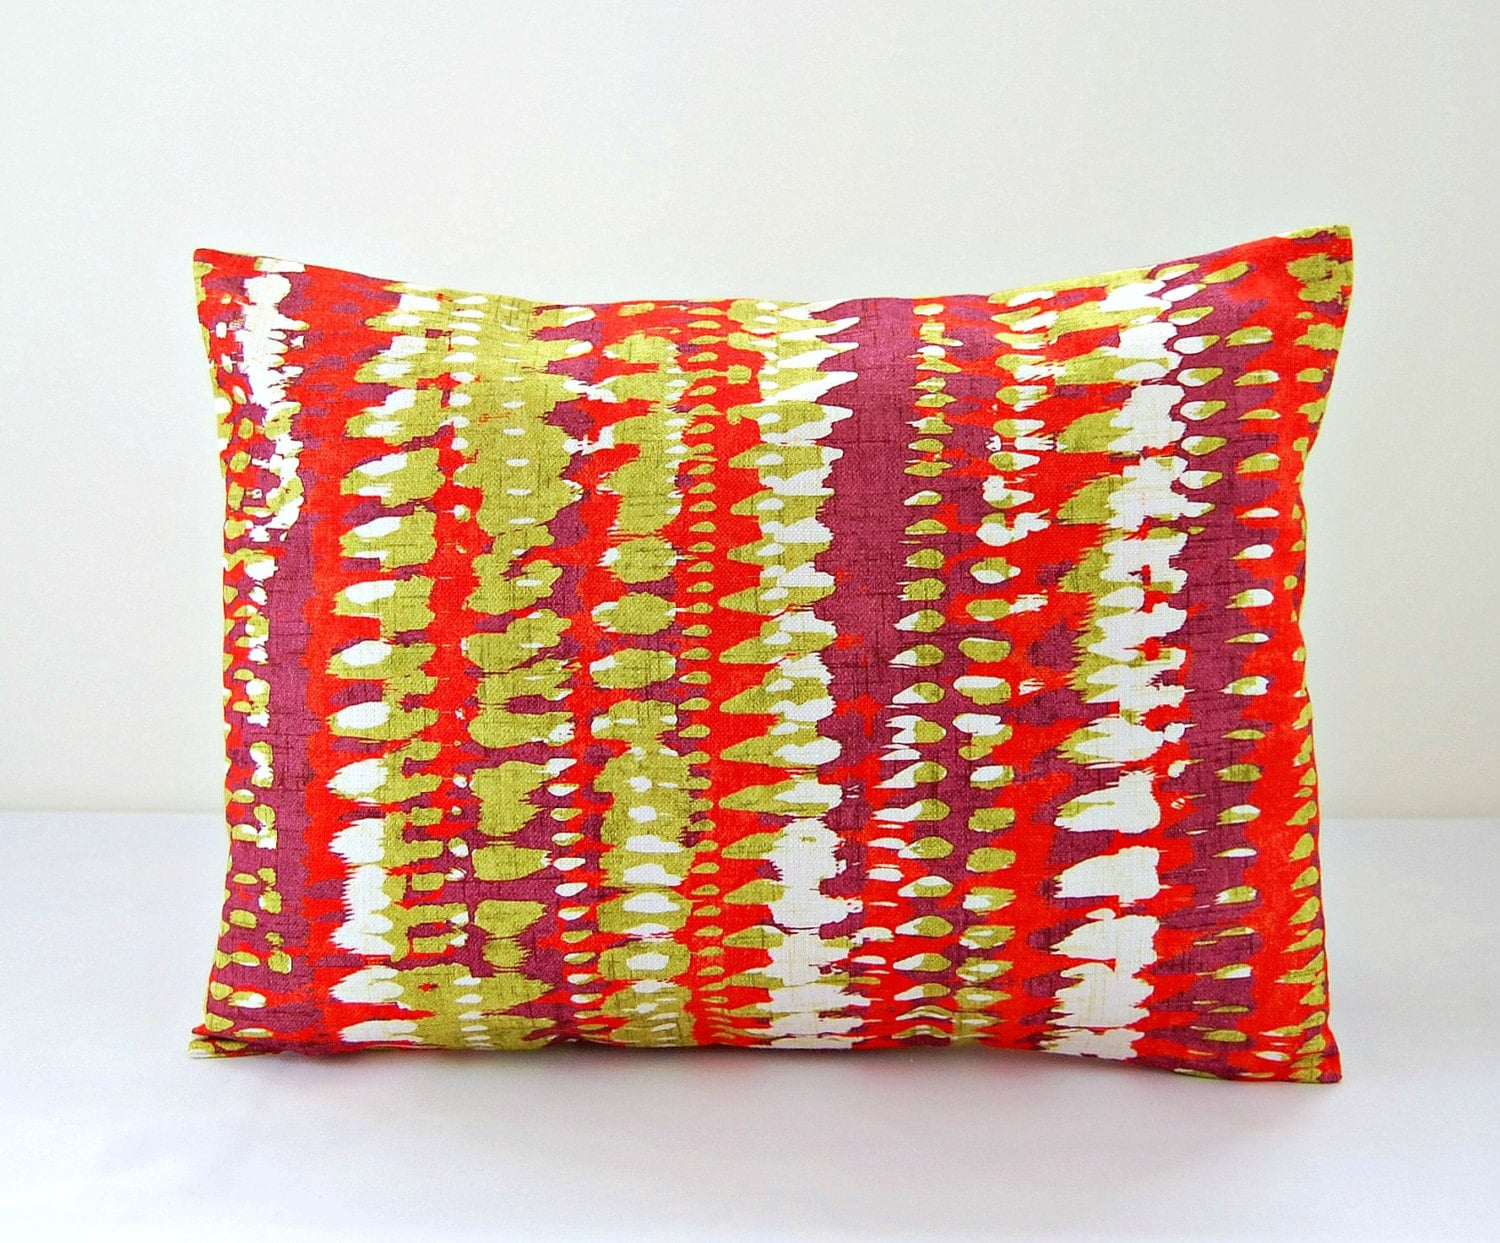 12 Inch Throw Pillow Covers : 12 x 16 inch lumbar decorative pillow cover lime green white